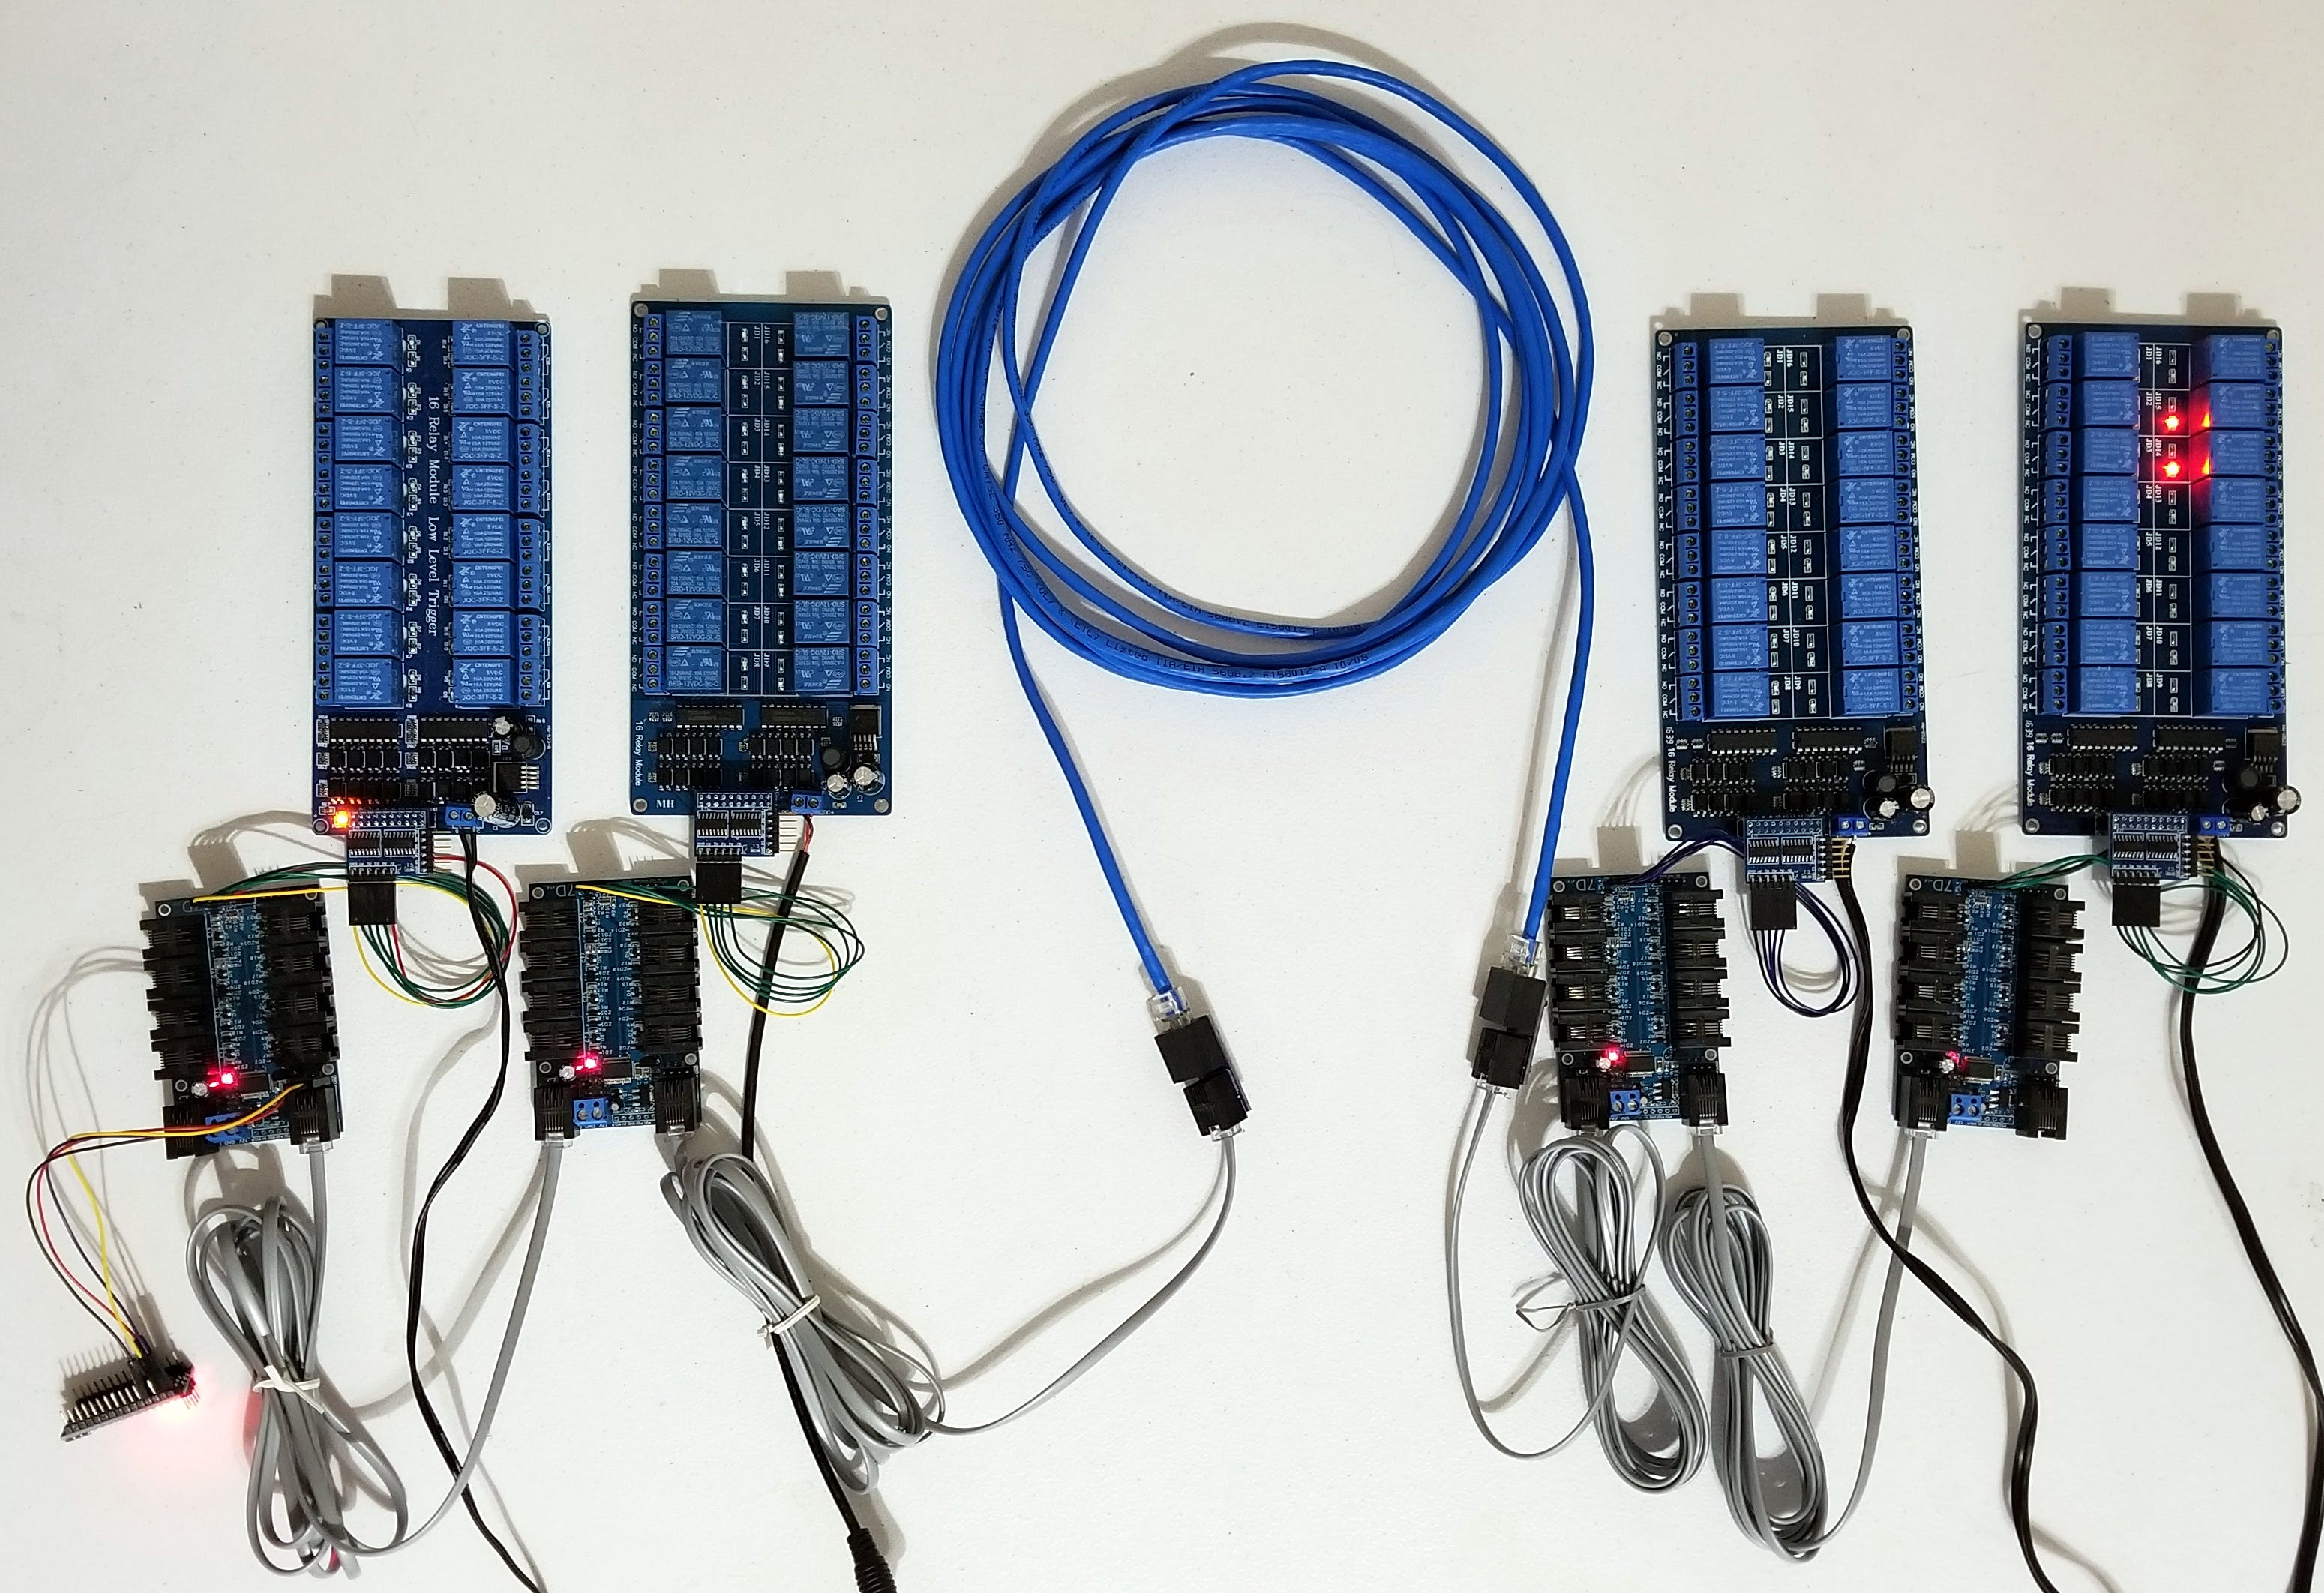 64 Relays using IO Expanders